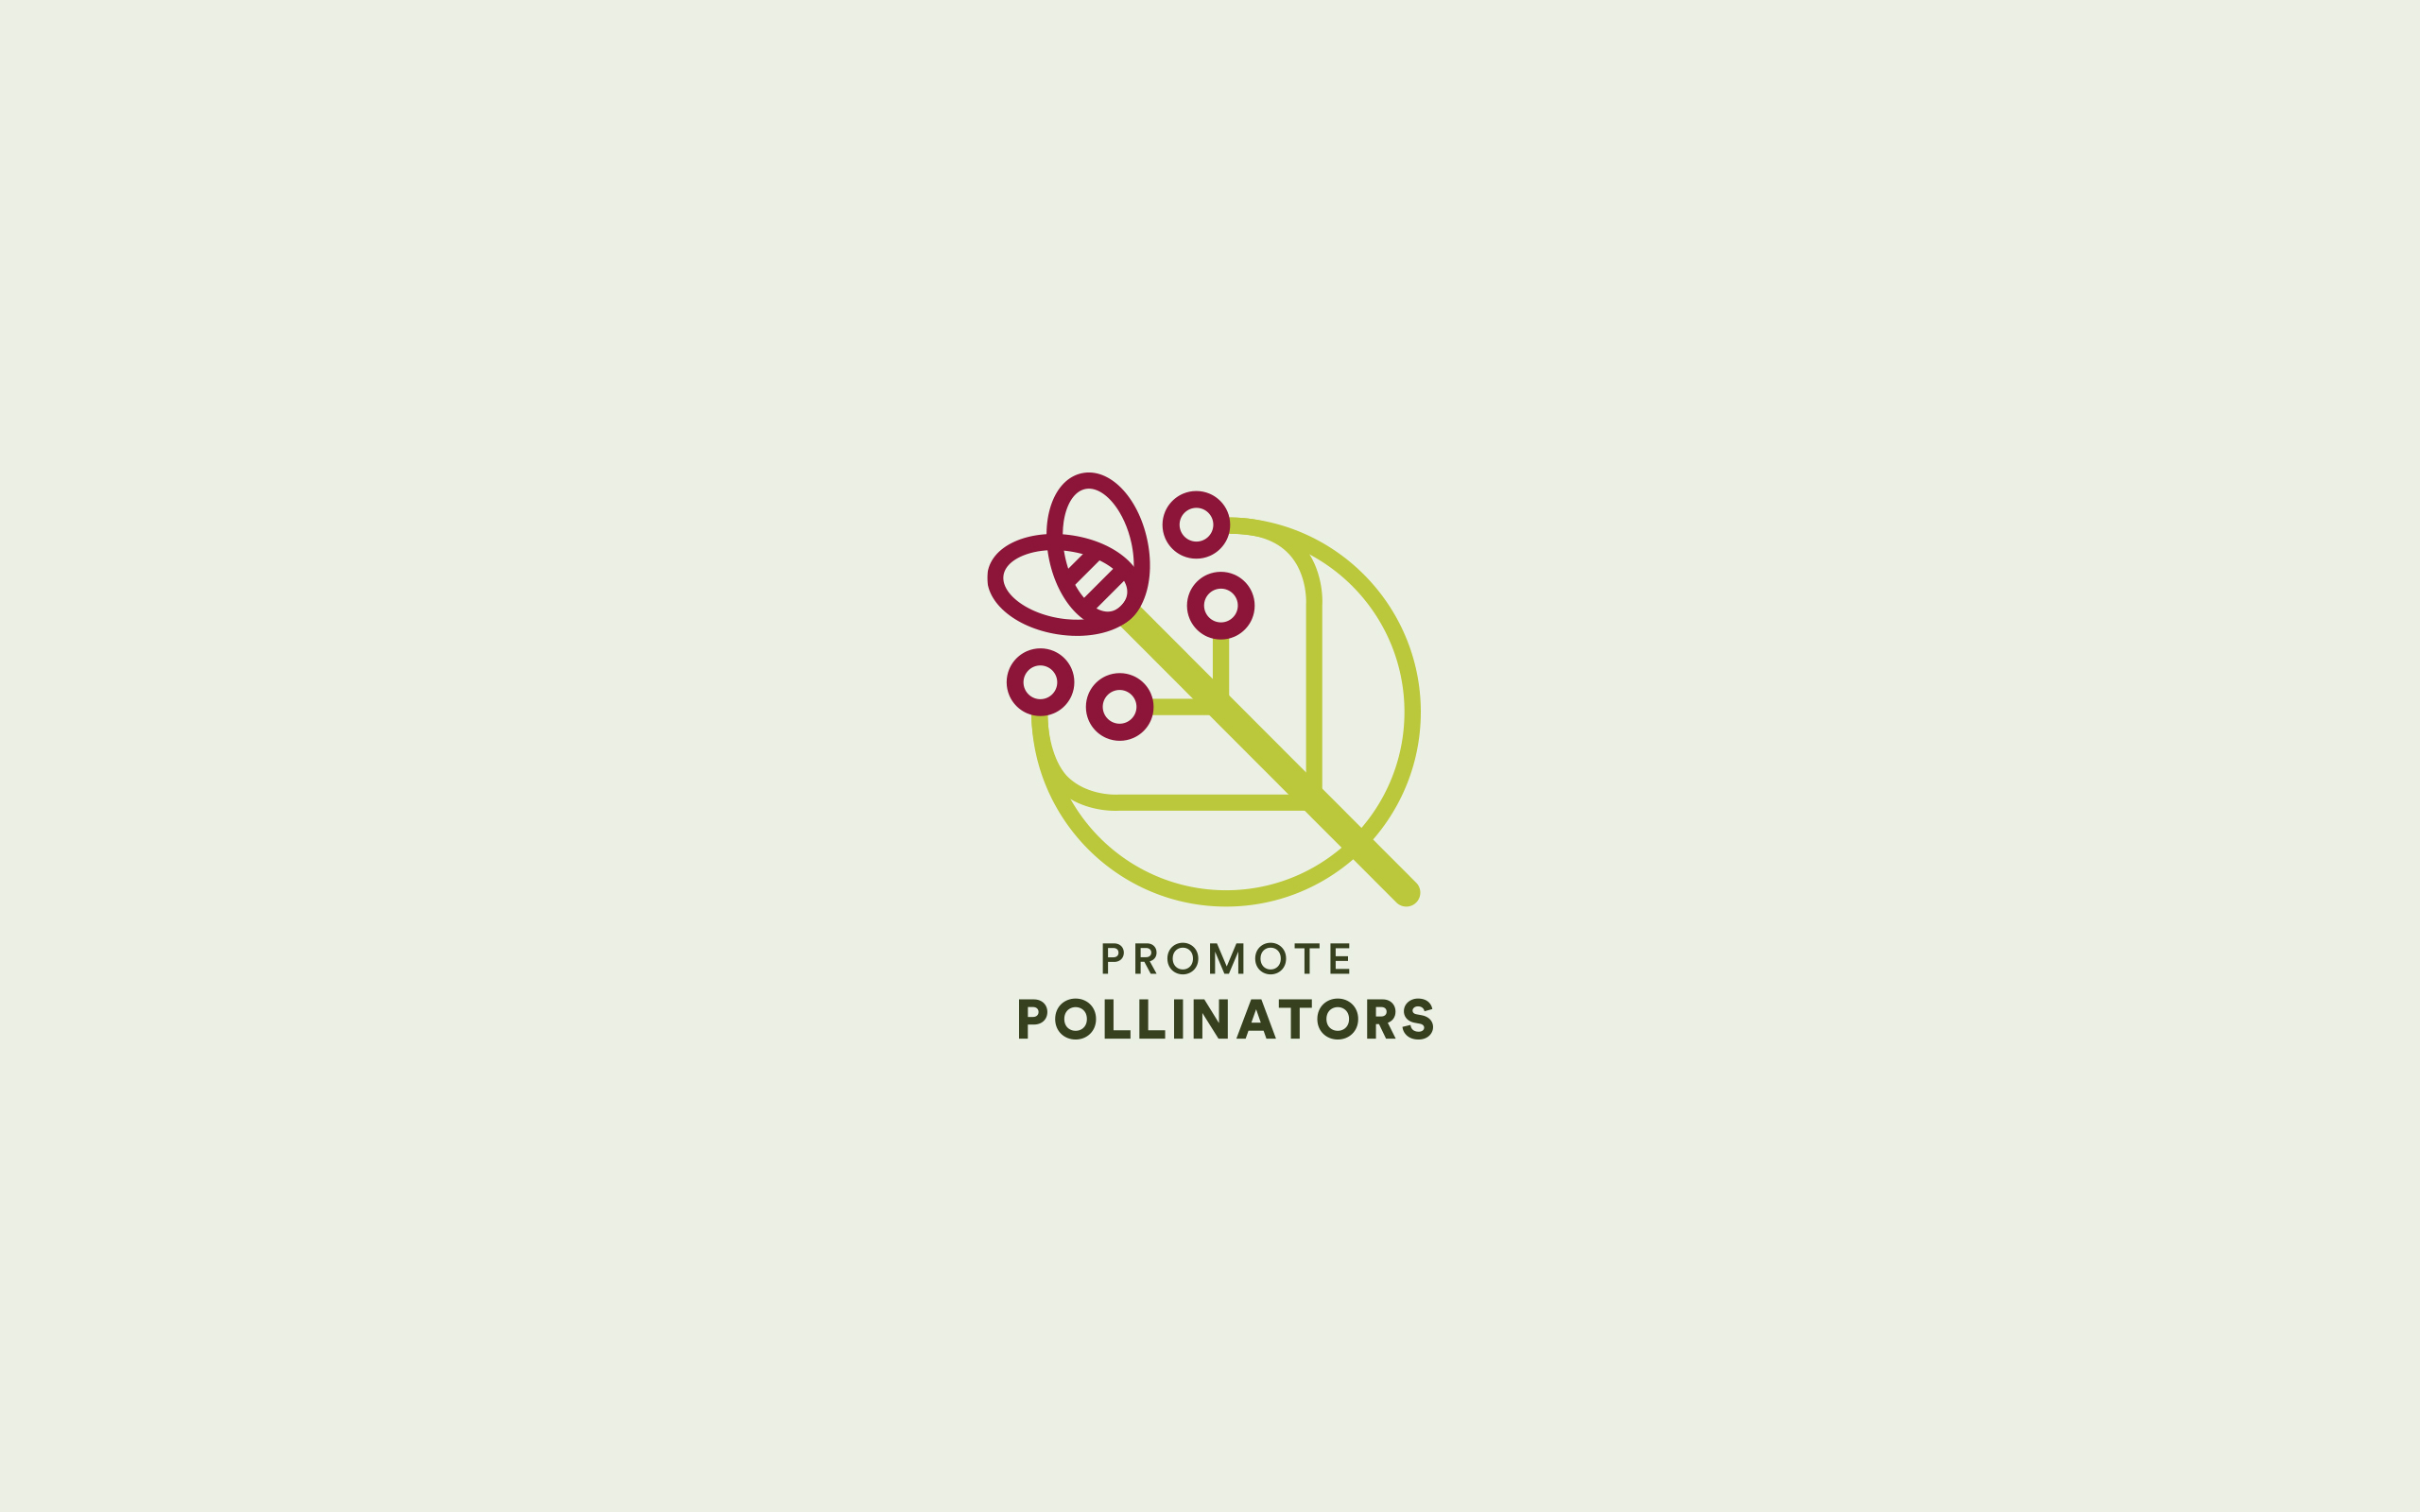 Logo and branding for Promote Pollinators